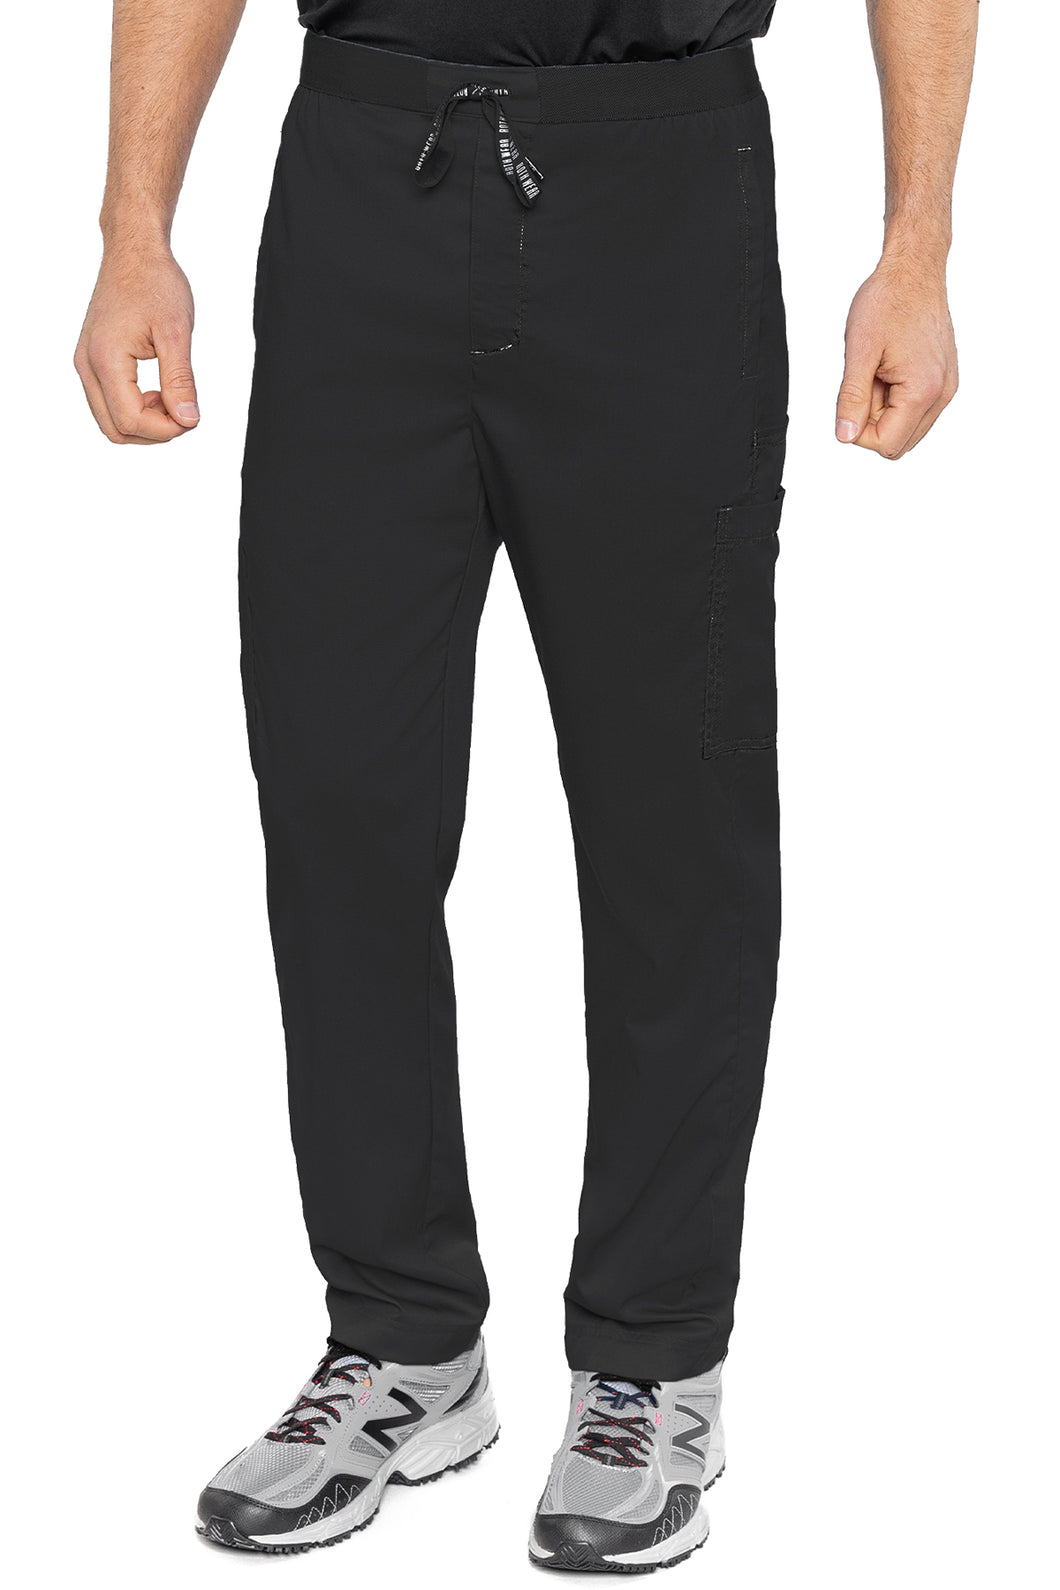 MedCouture ROTH wear 7779 straight leg pant